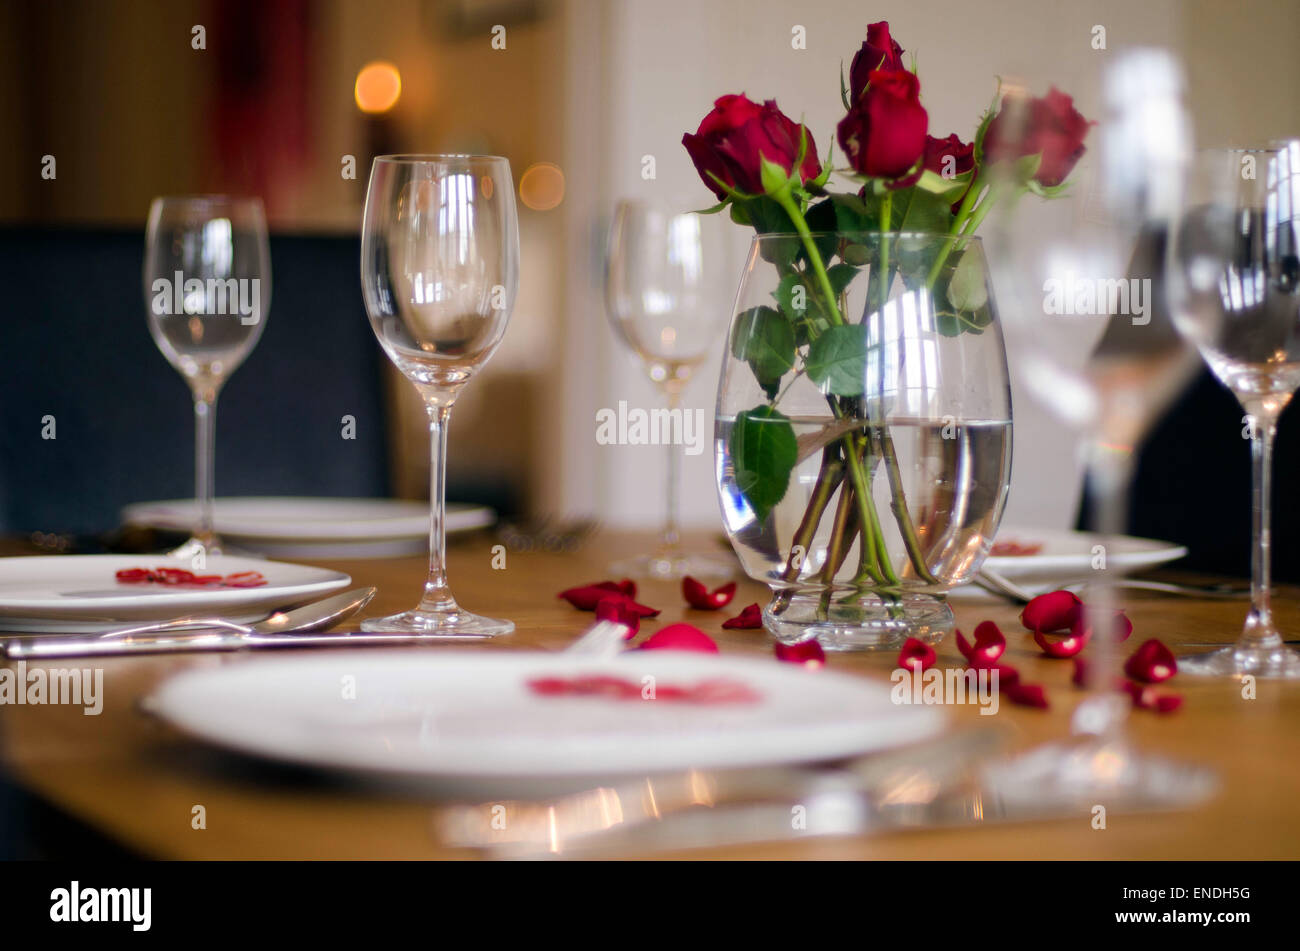 A Dining Table Set With Place Settings Wine Glasses Red Roses In - Wine glass table setting